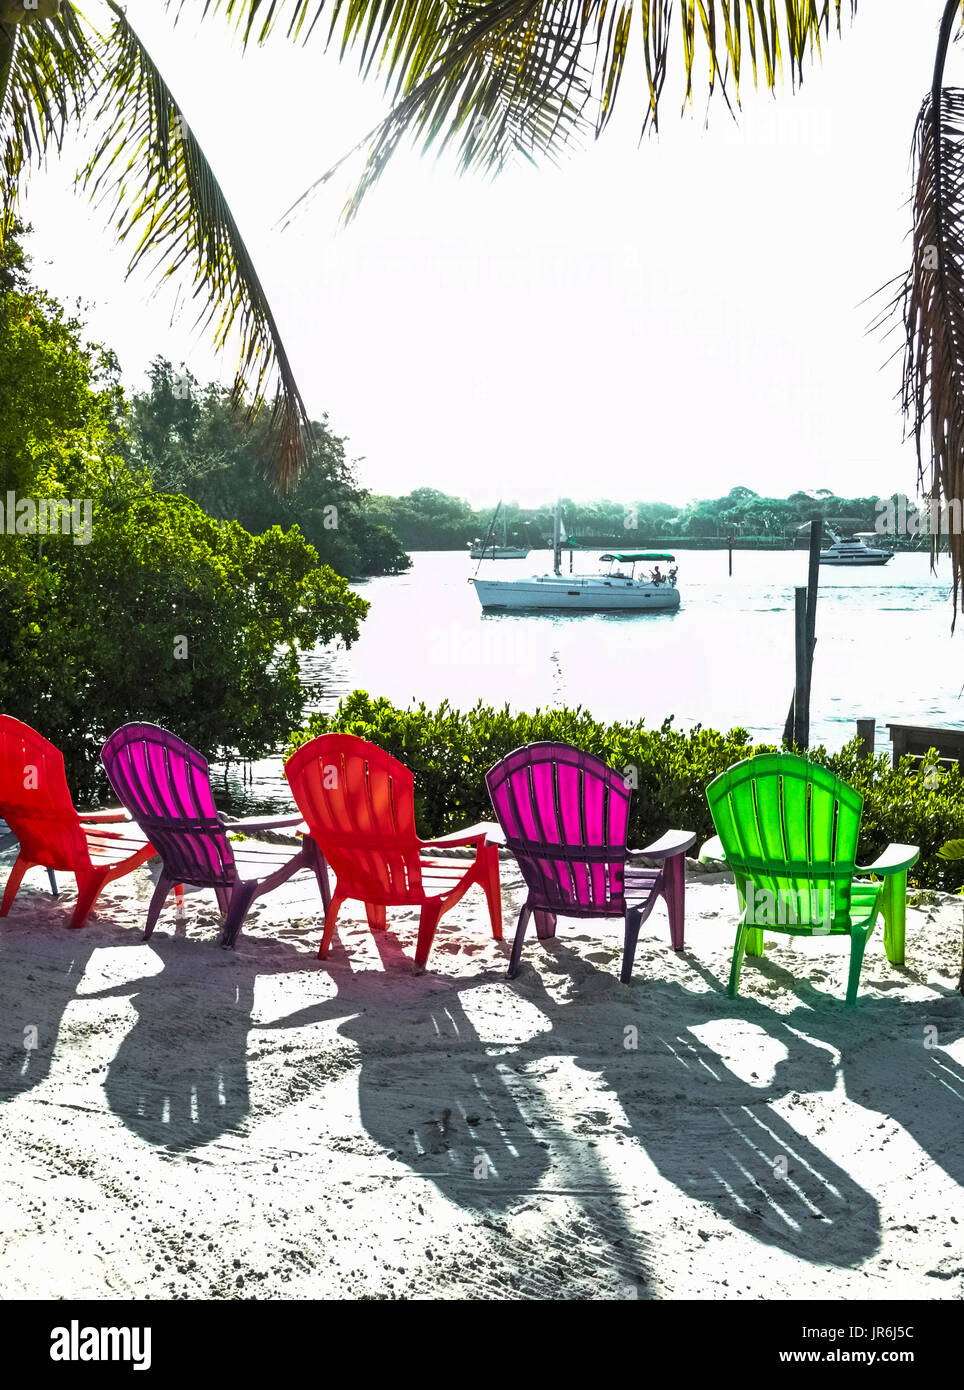 Colorful translucent plastic deck chairs invite relaxation and create shadows from the brilliant sunshine on a sandy waterfront along the Gulf Intracoastal Waterway in Sarasota County, Florida, USA. - Stock Image